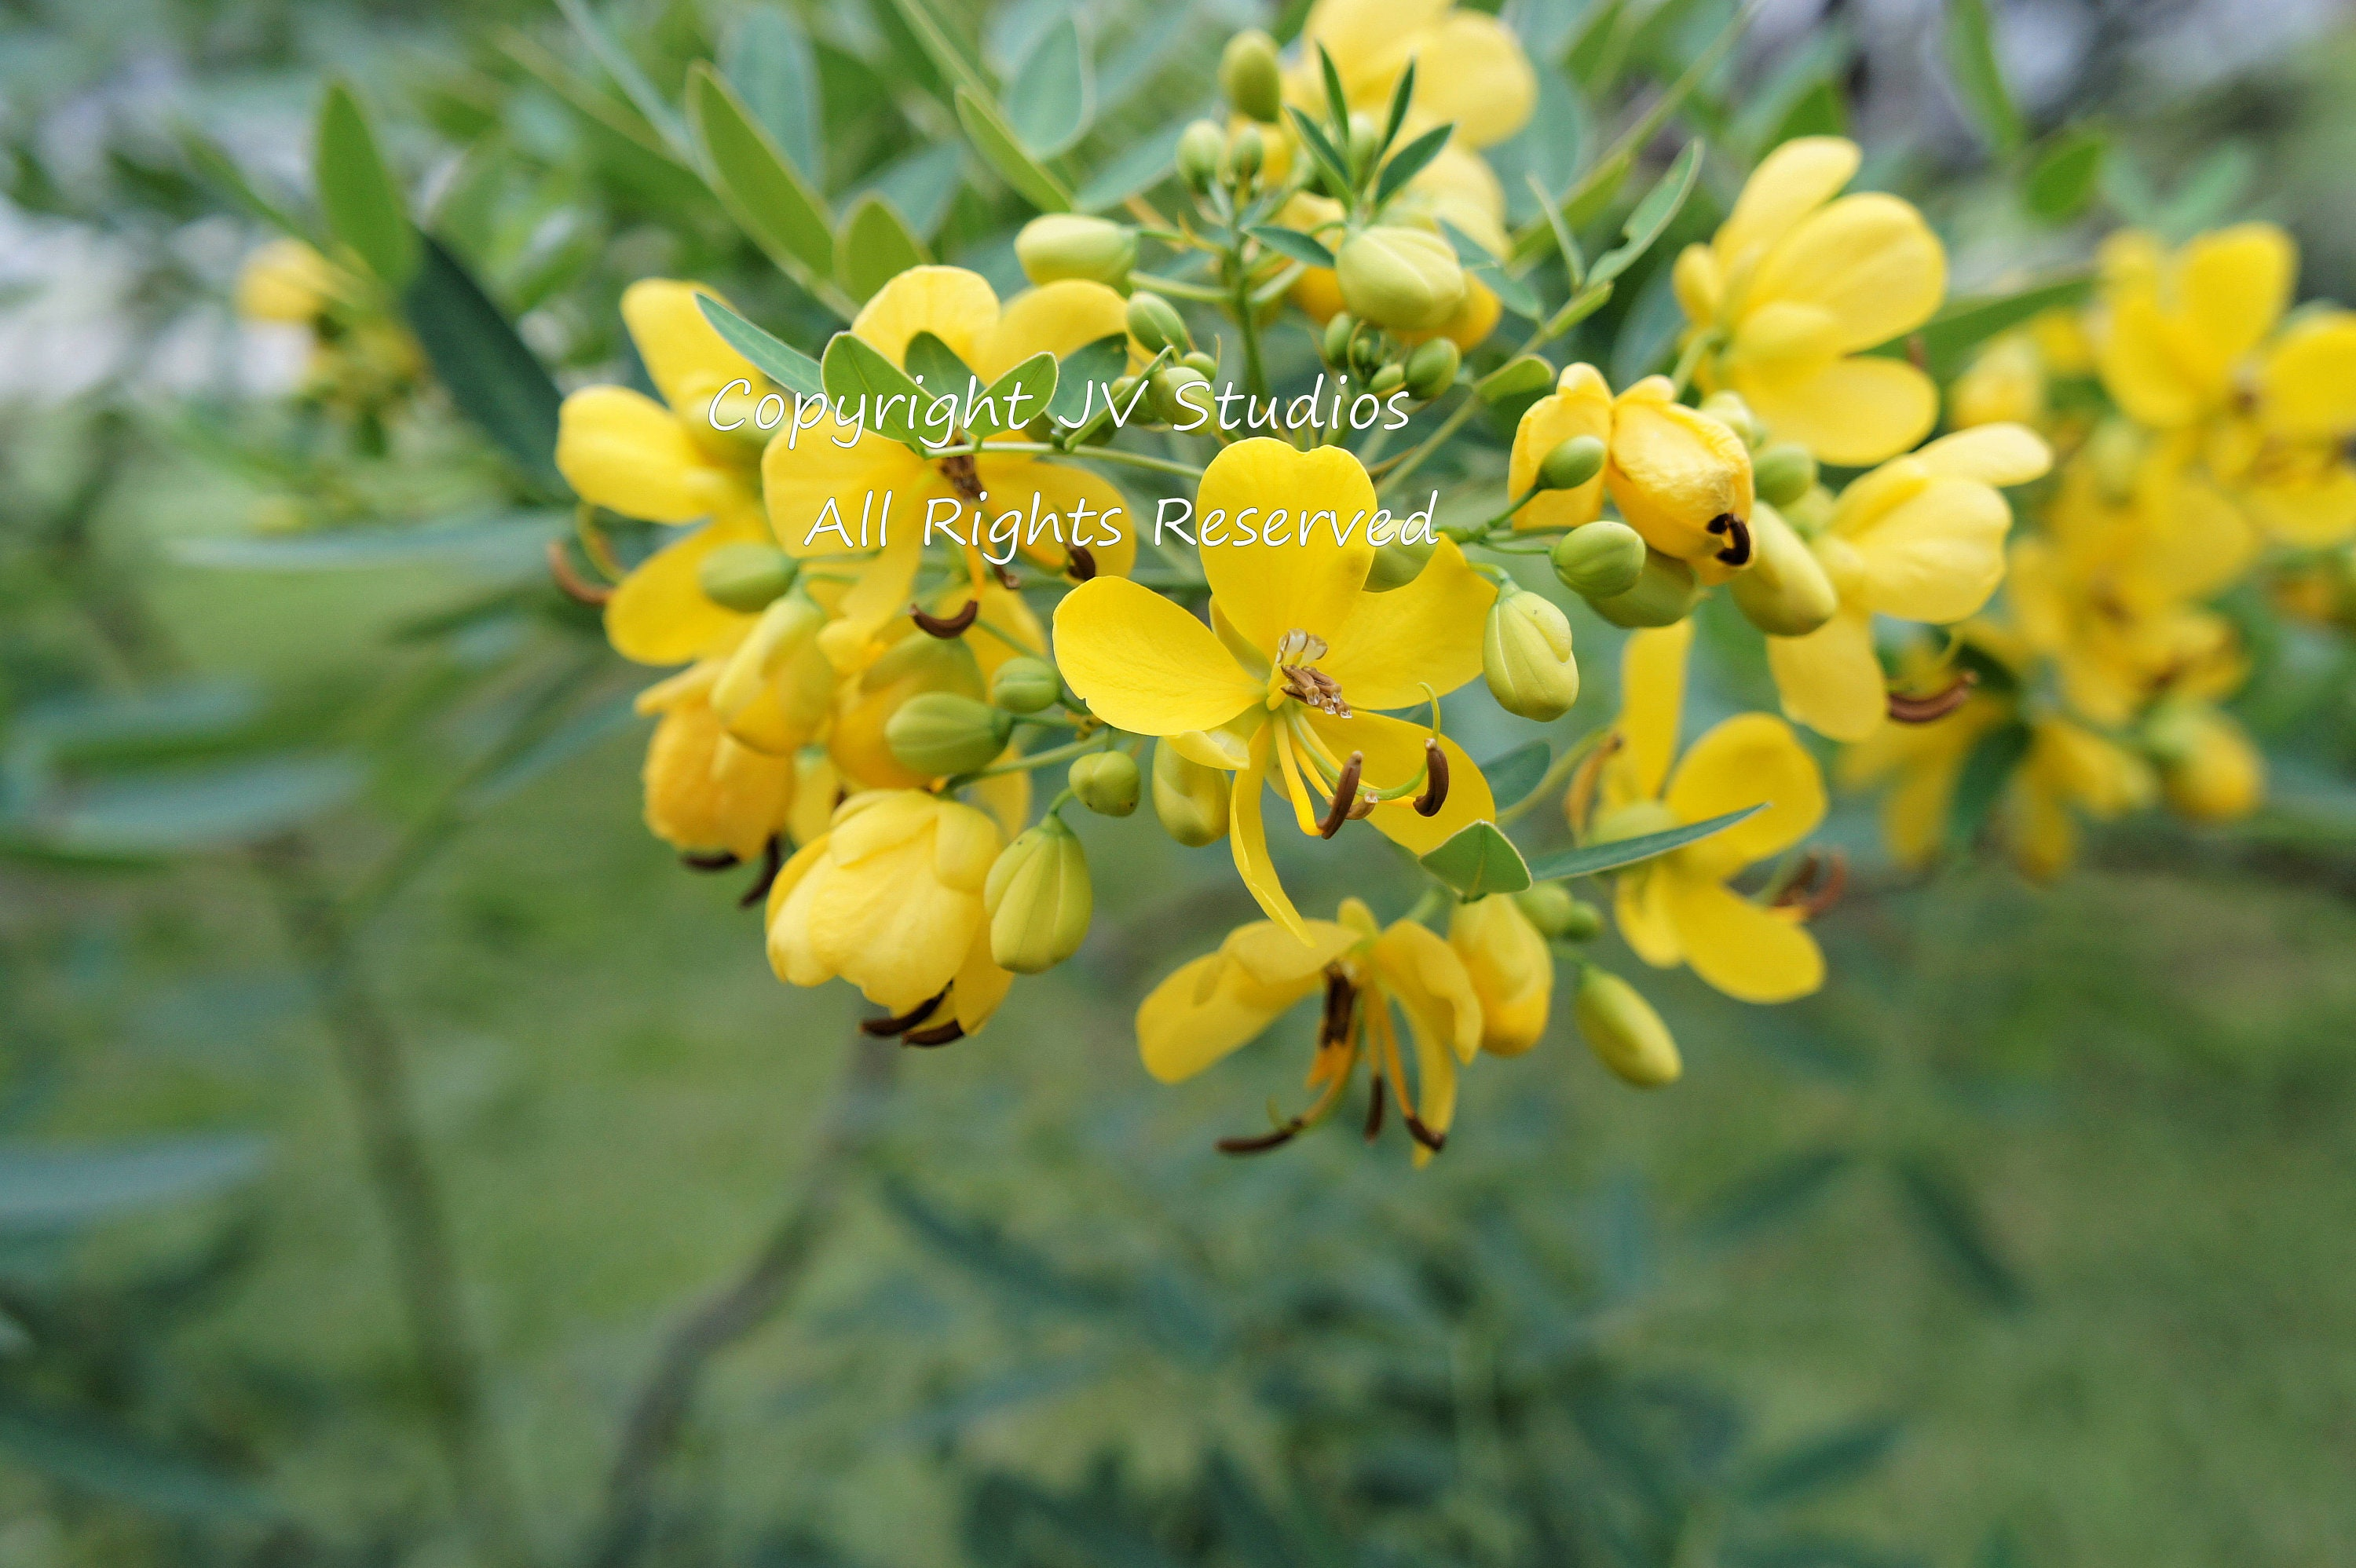 10 Seeds Sickle Pod Wild Sensitive Plant Seeds Small Evergreen Etsy